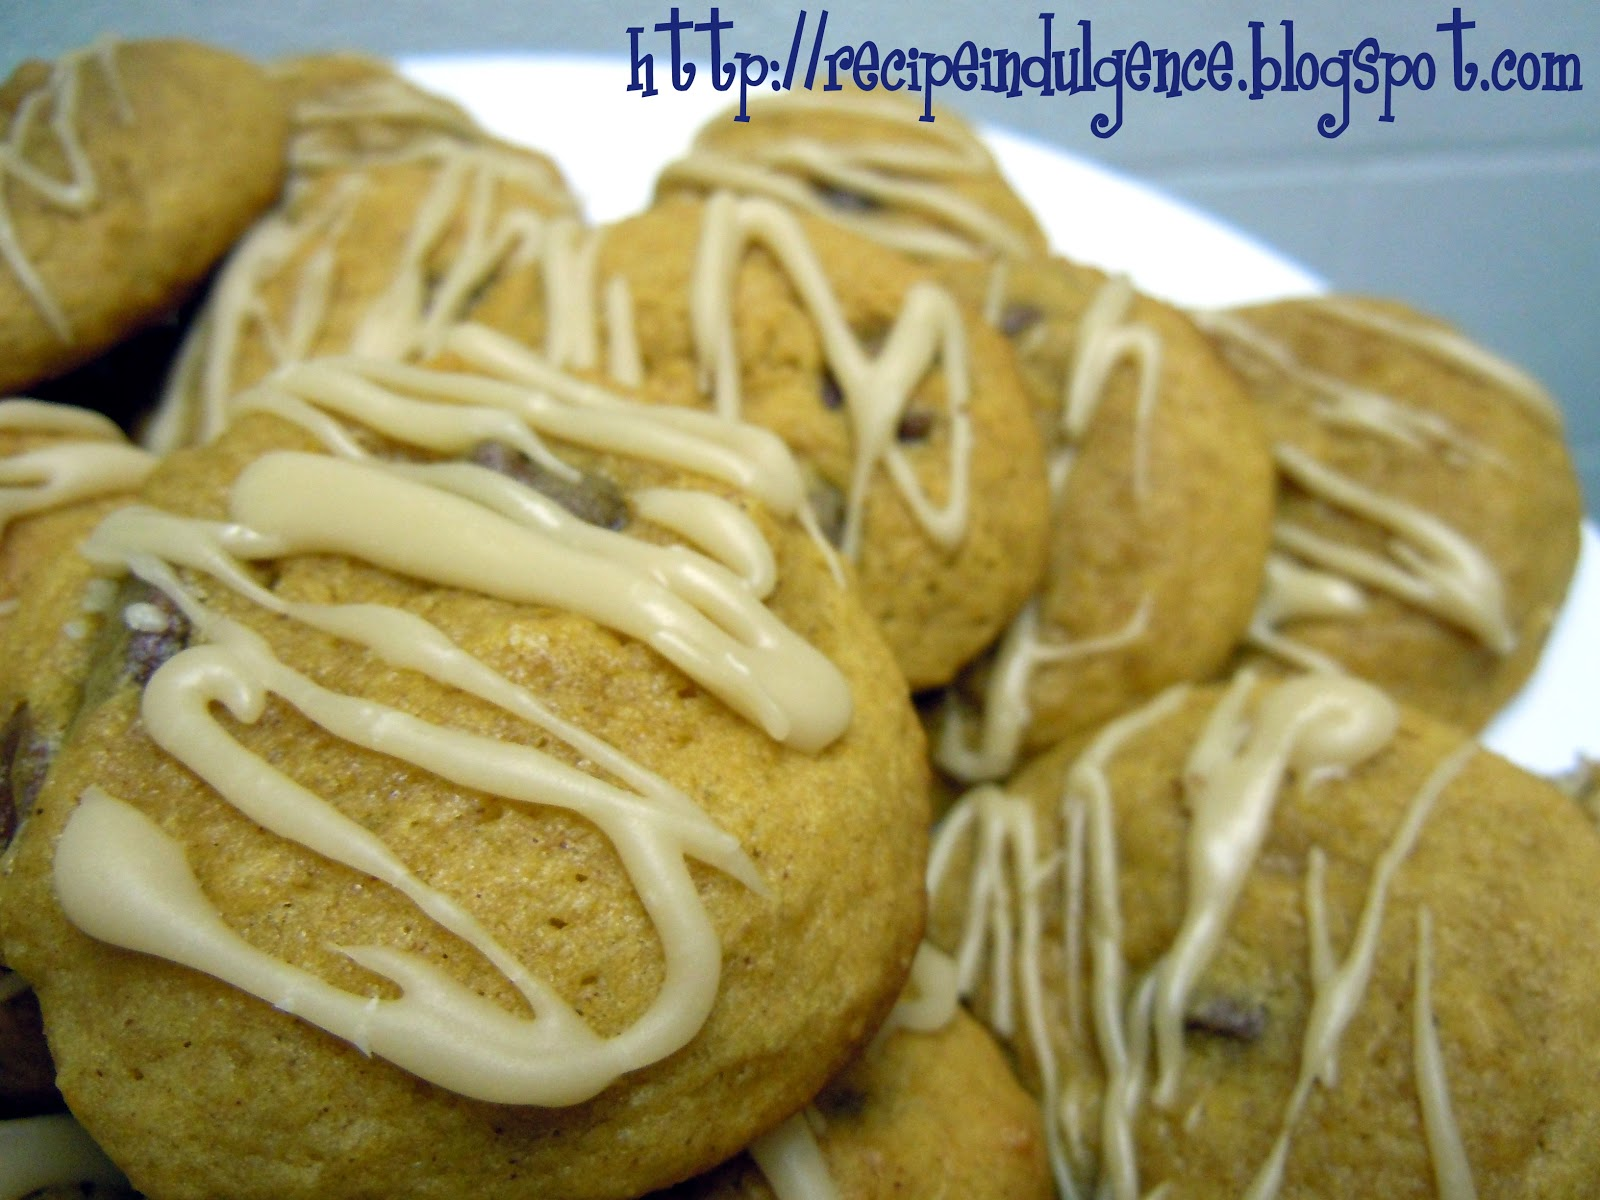 Recipe Indulgence: Pumpkin Chocolate Chip Cookies with ...